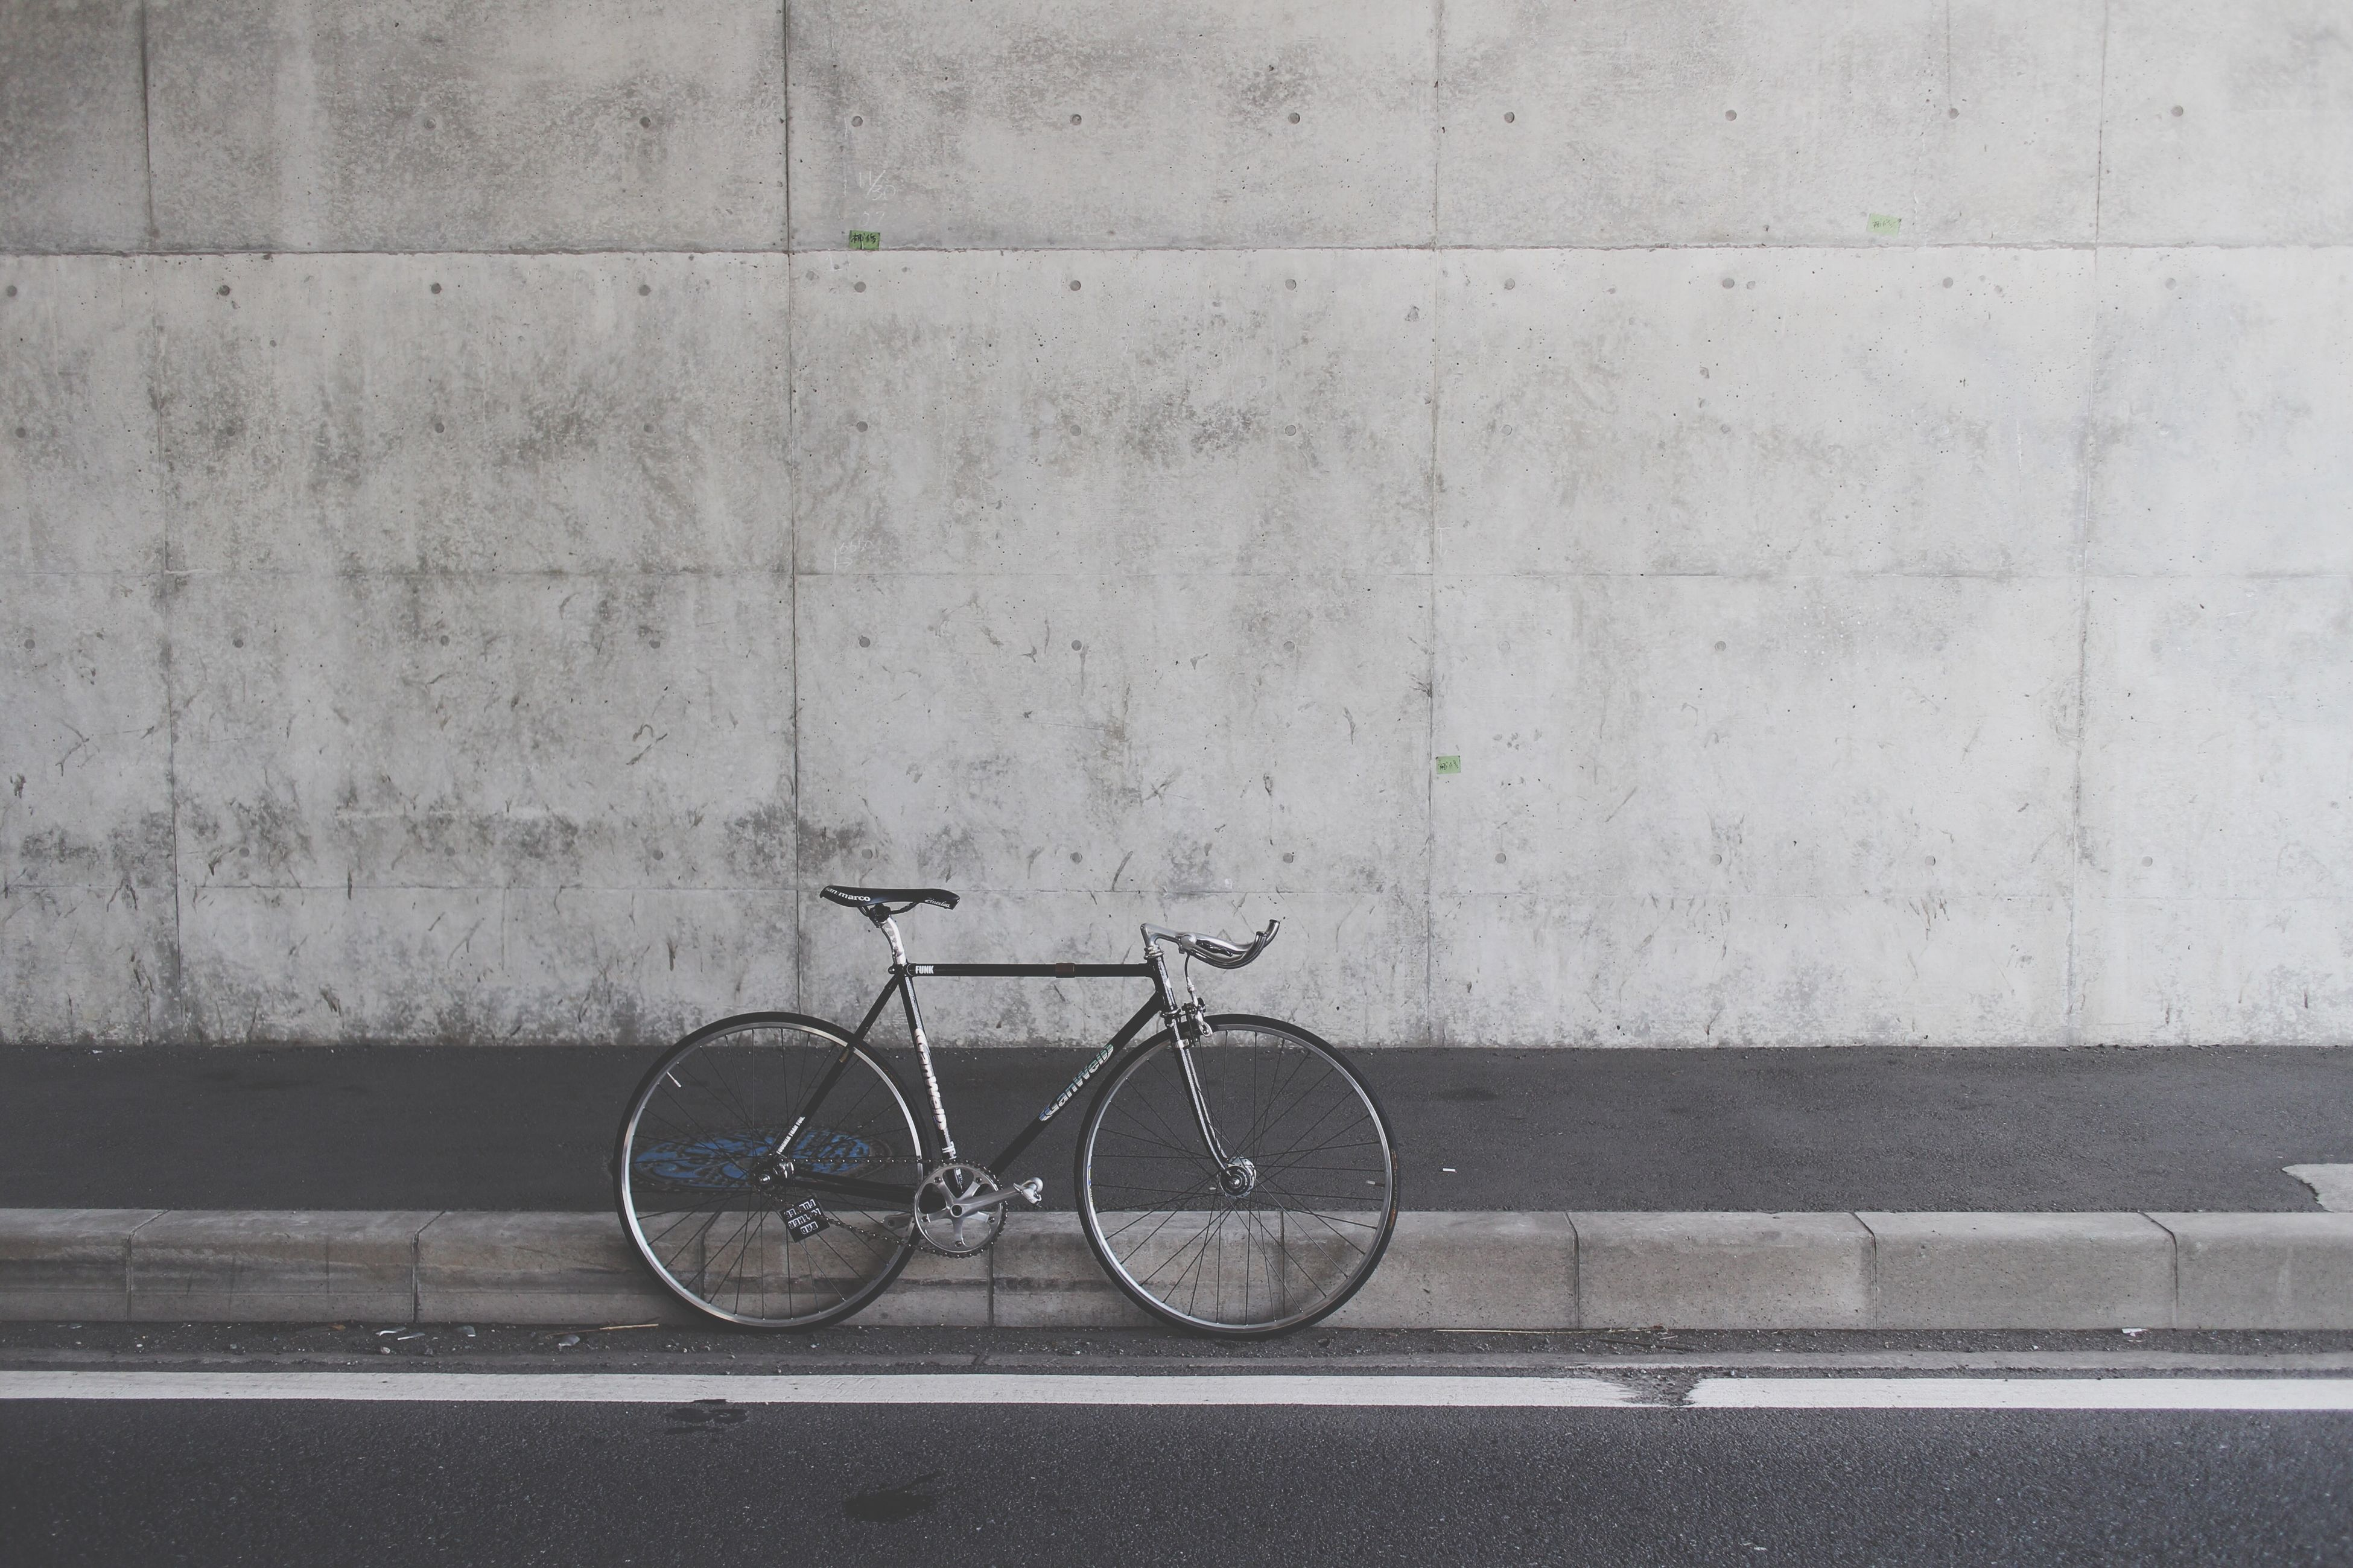 bicycle, transportation, land vehicle, mode of transport, stationary, parked, parking, street, built structure, wall - building feature, cycle, road, sidewalk, day, outdoors, architecture, building exterior, wheel, no people, side view